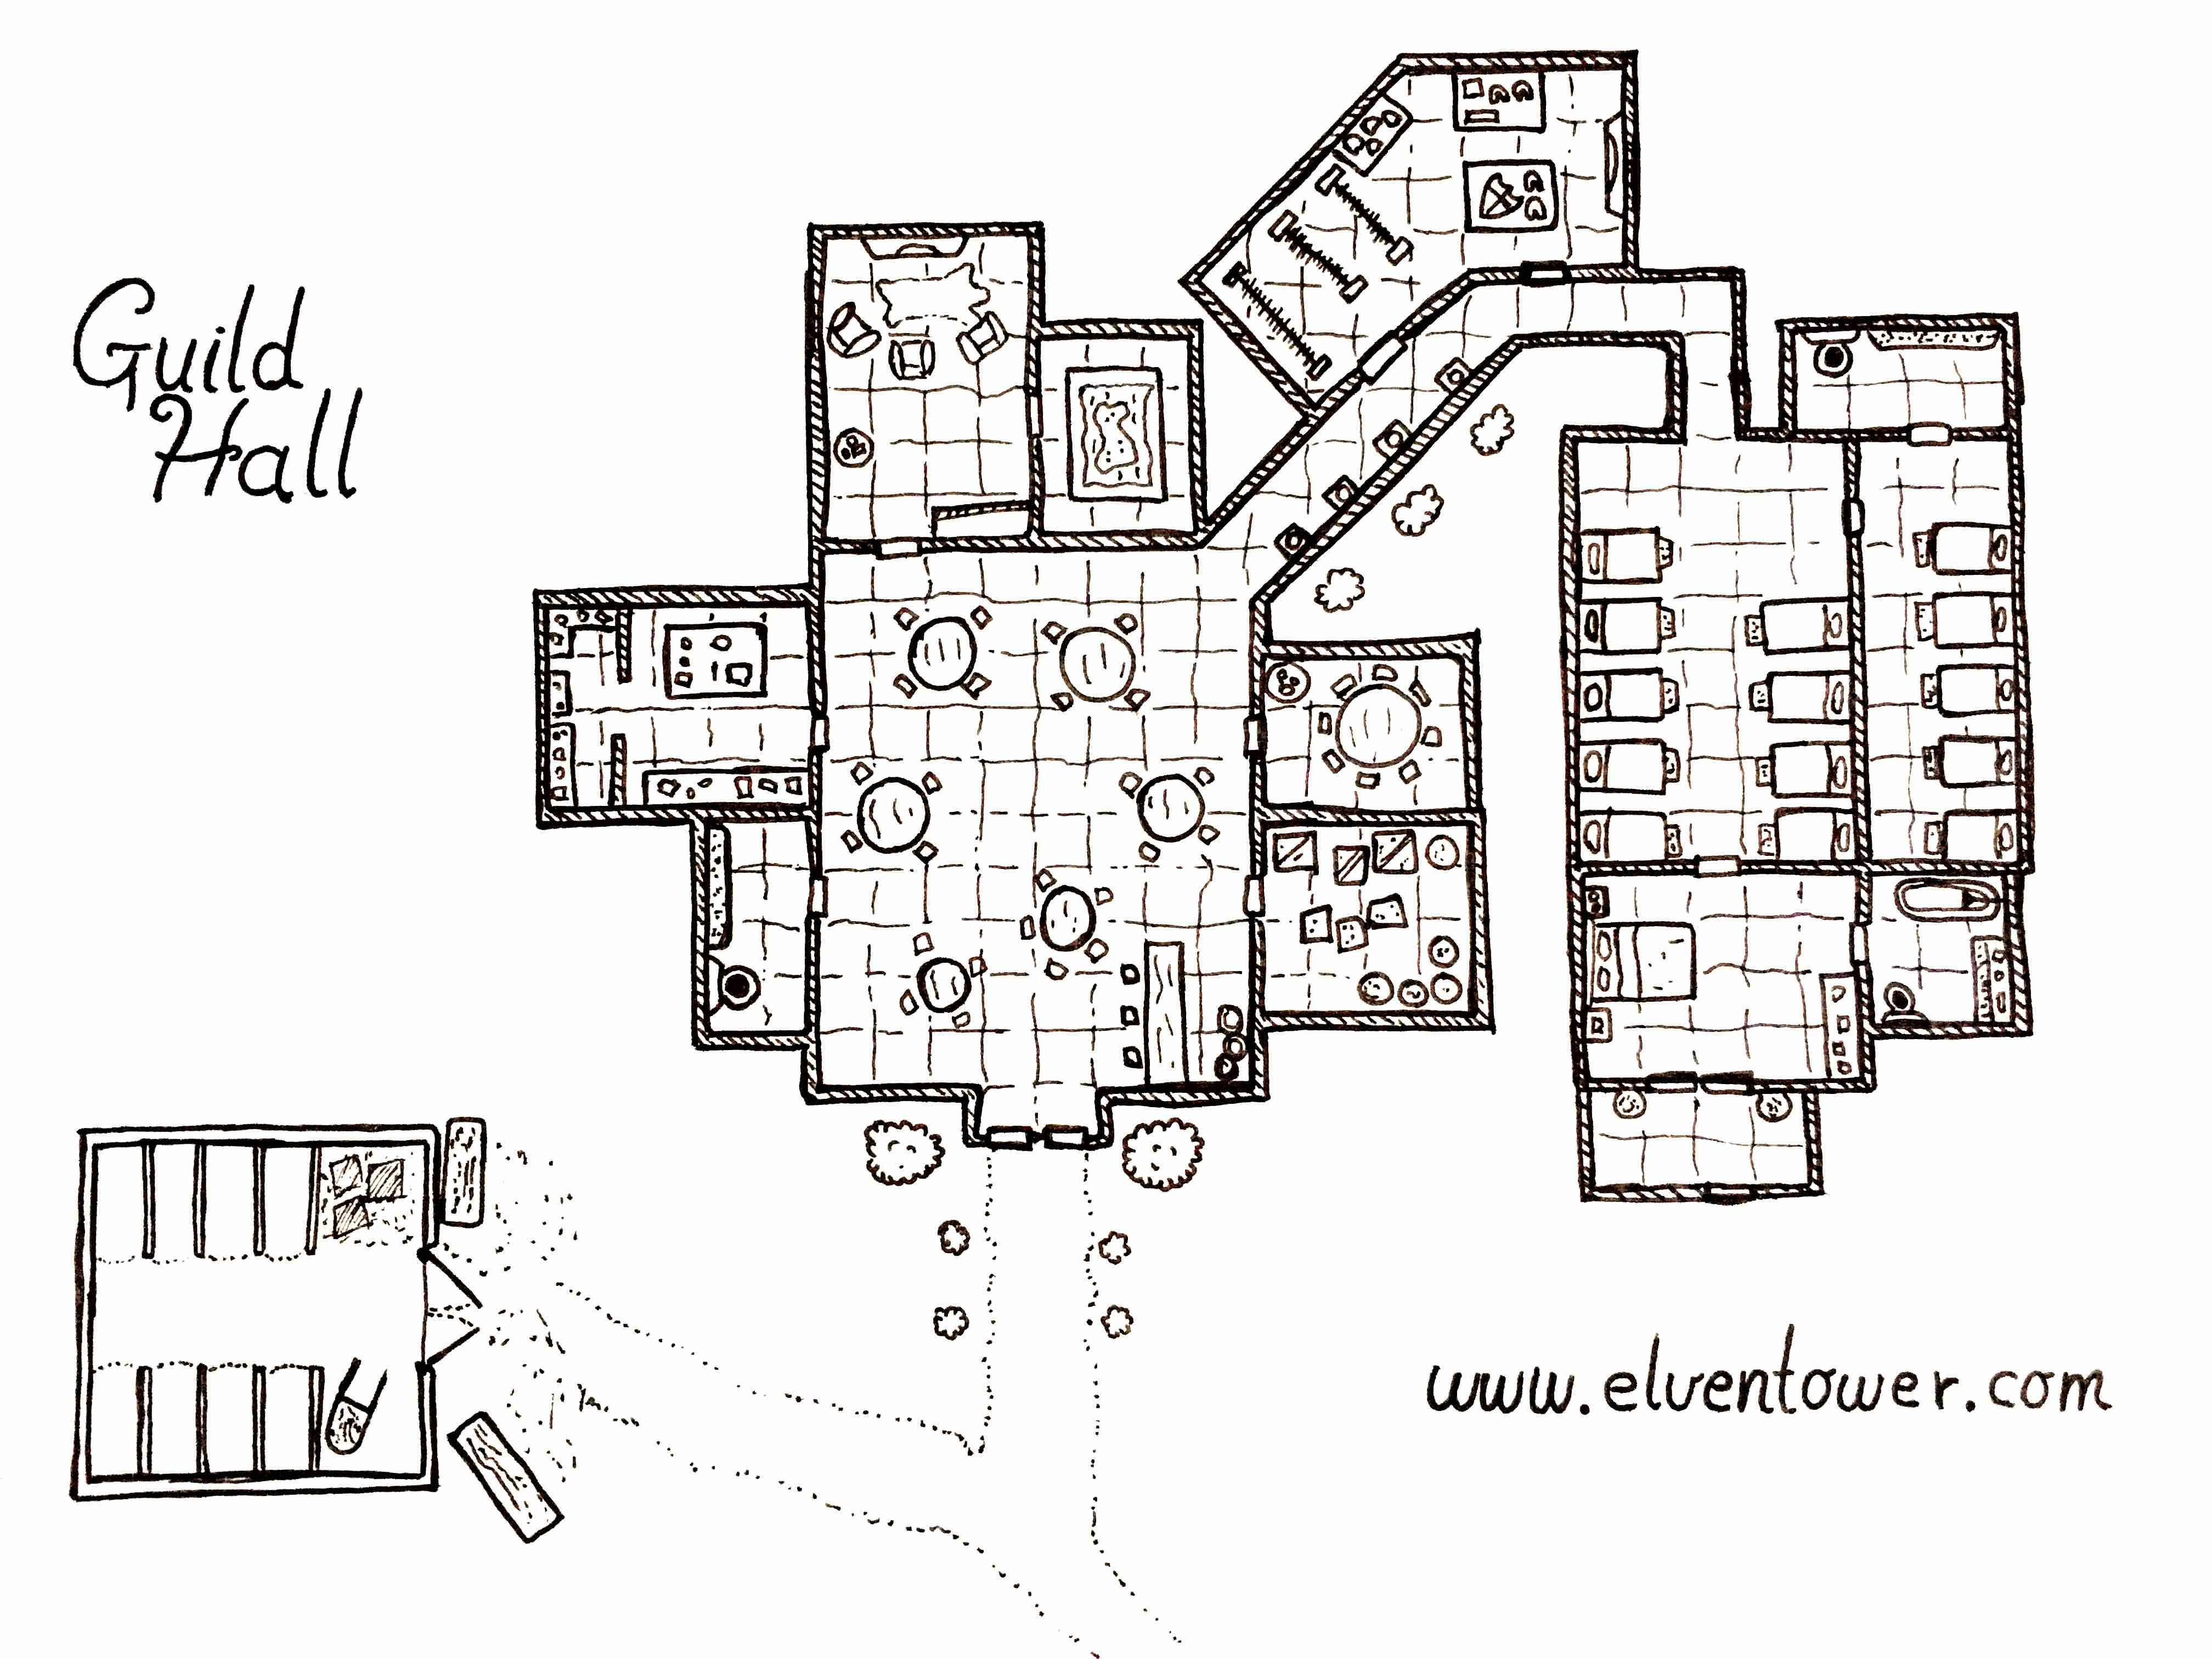 guild-hall-s